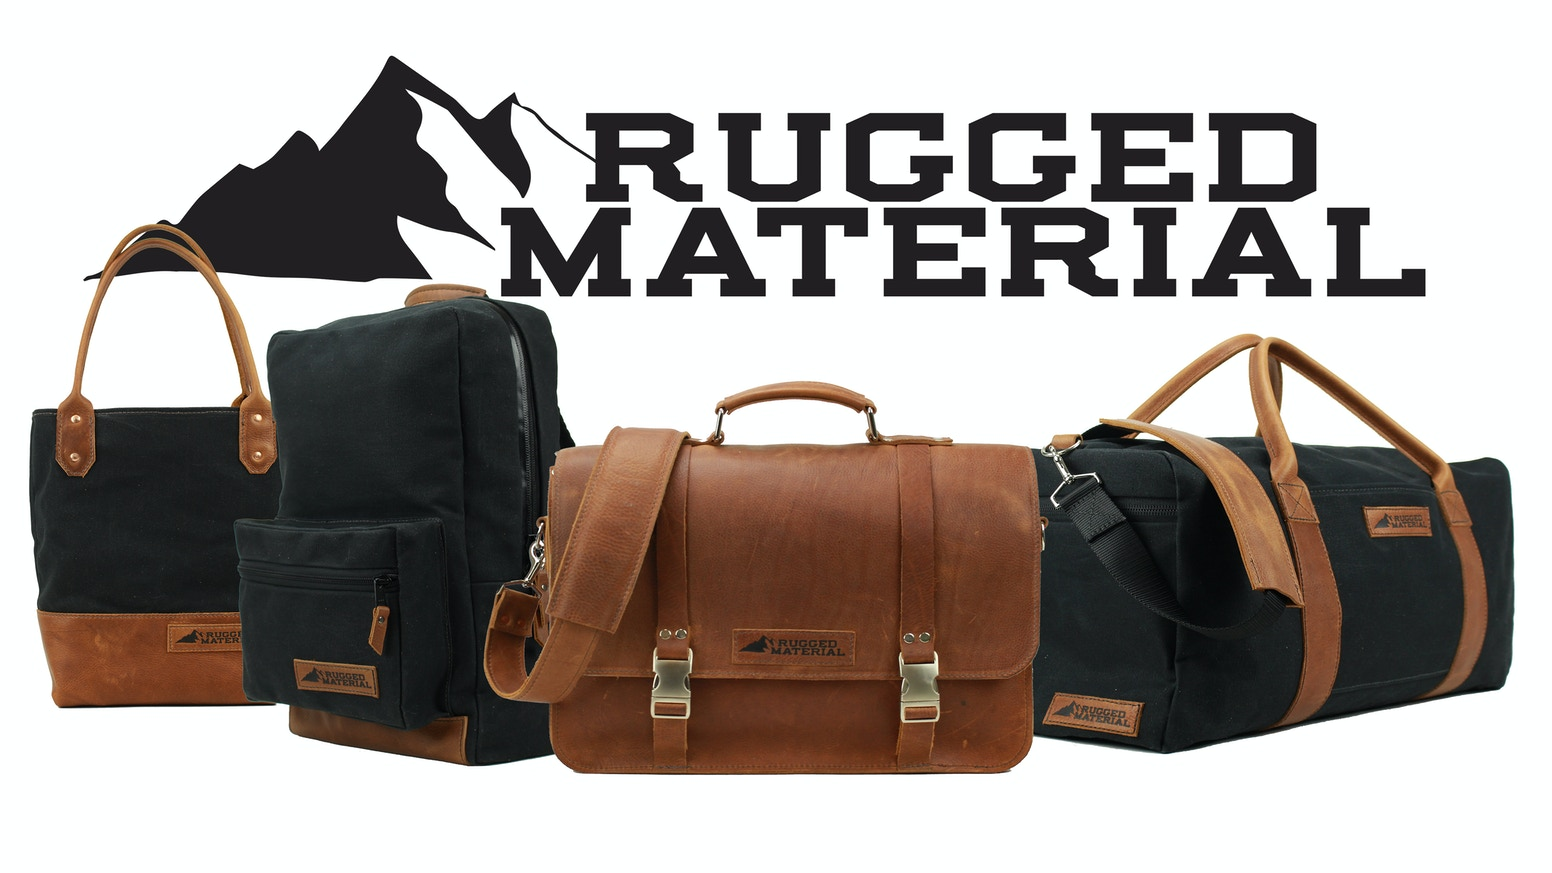 Premium Leather Goods For Everyone Made In U S A Guaranteed Life Delivered At Whole